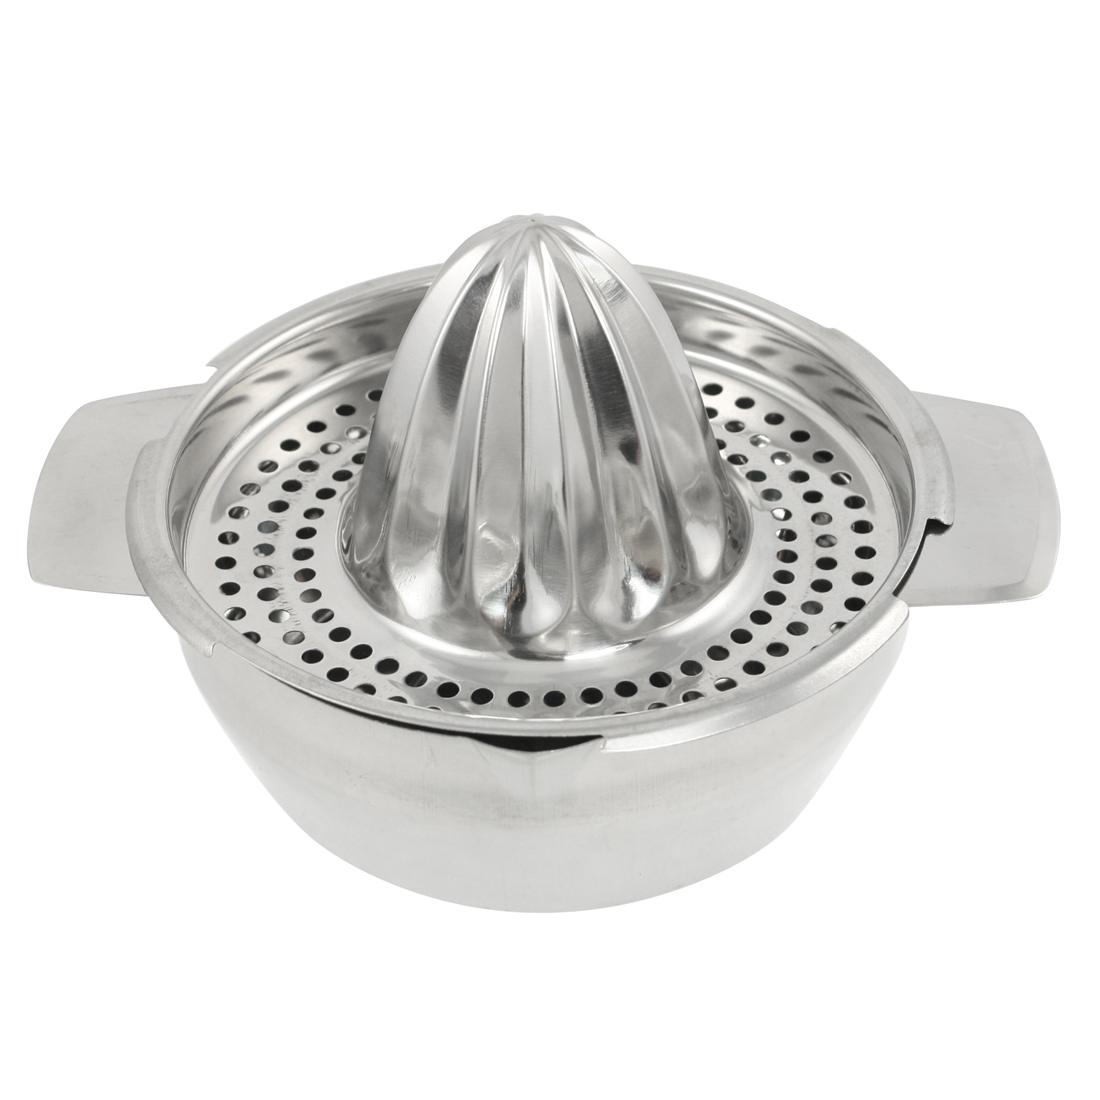 Silver Tone Stainless Steel Mesh Hole Design Citrus Juicer Squeezer